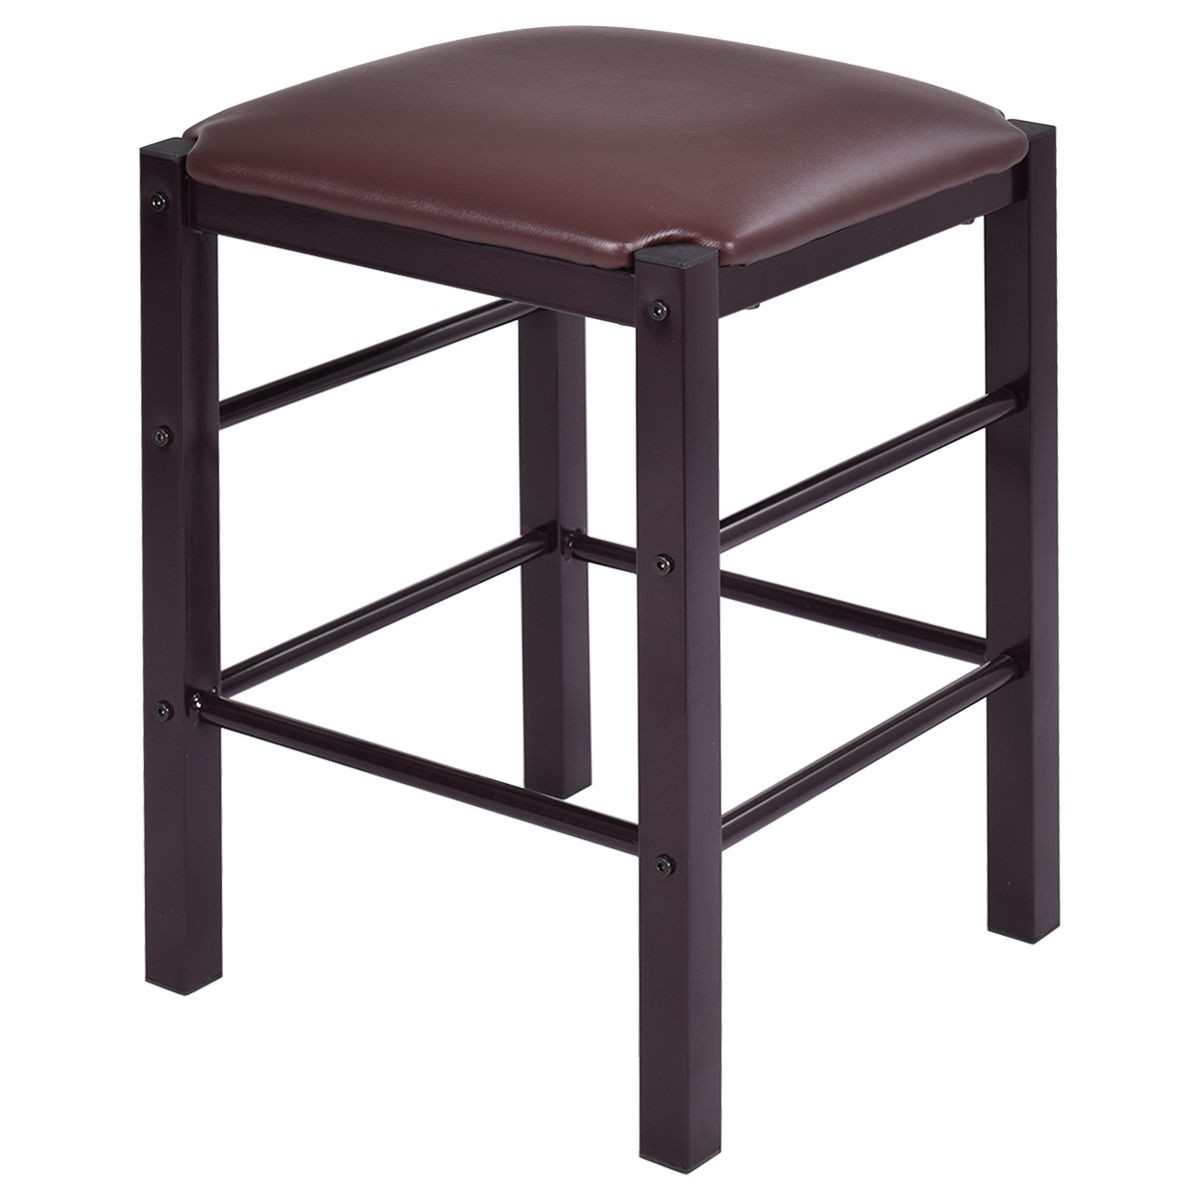 3 kitchen bar furniture faux marble table 2 chairs counter height dining set ebay. Black Bedroom Furniture Sets. Home Design Ideas